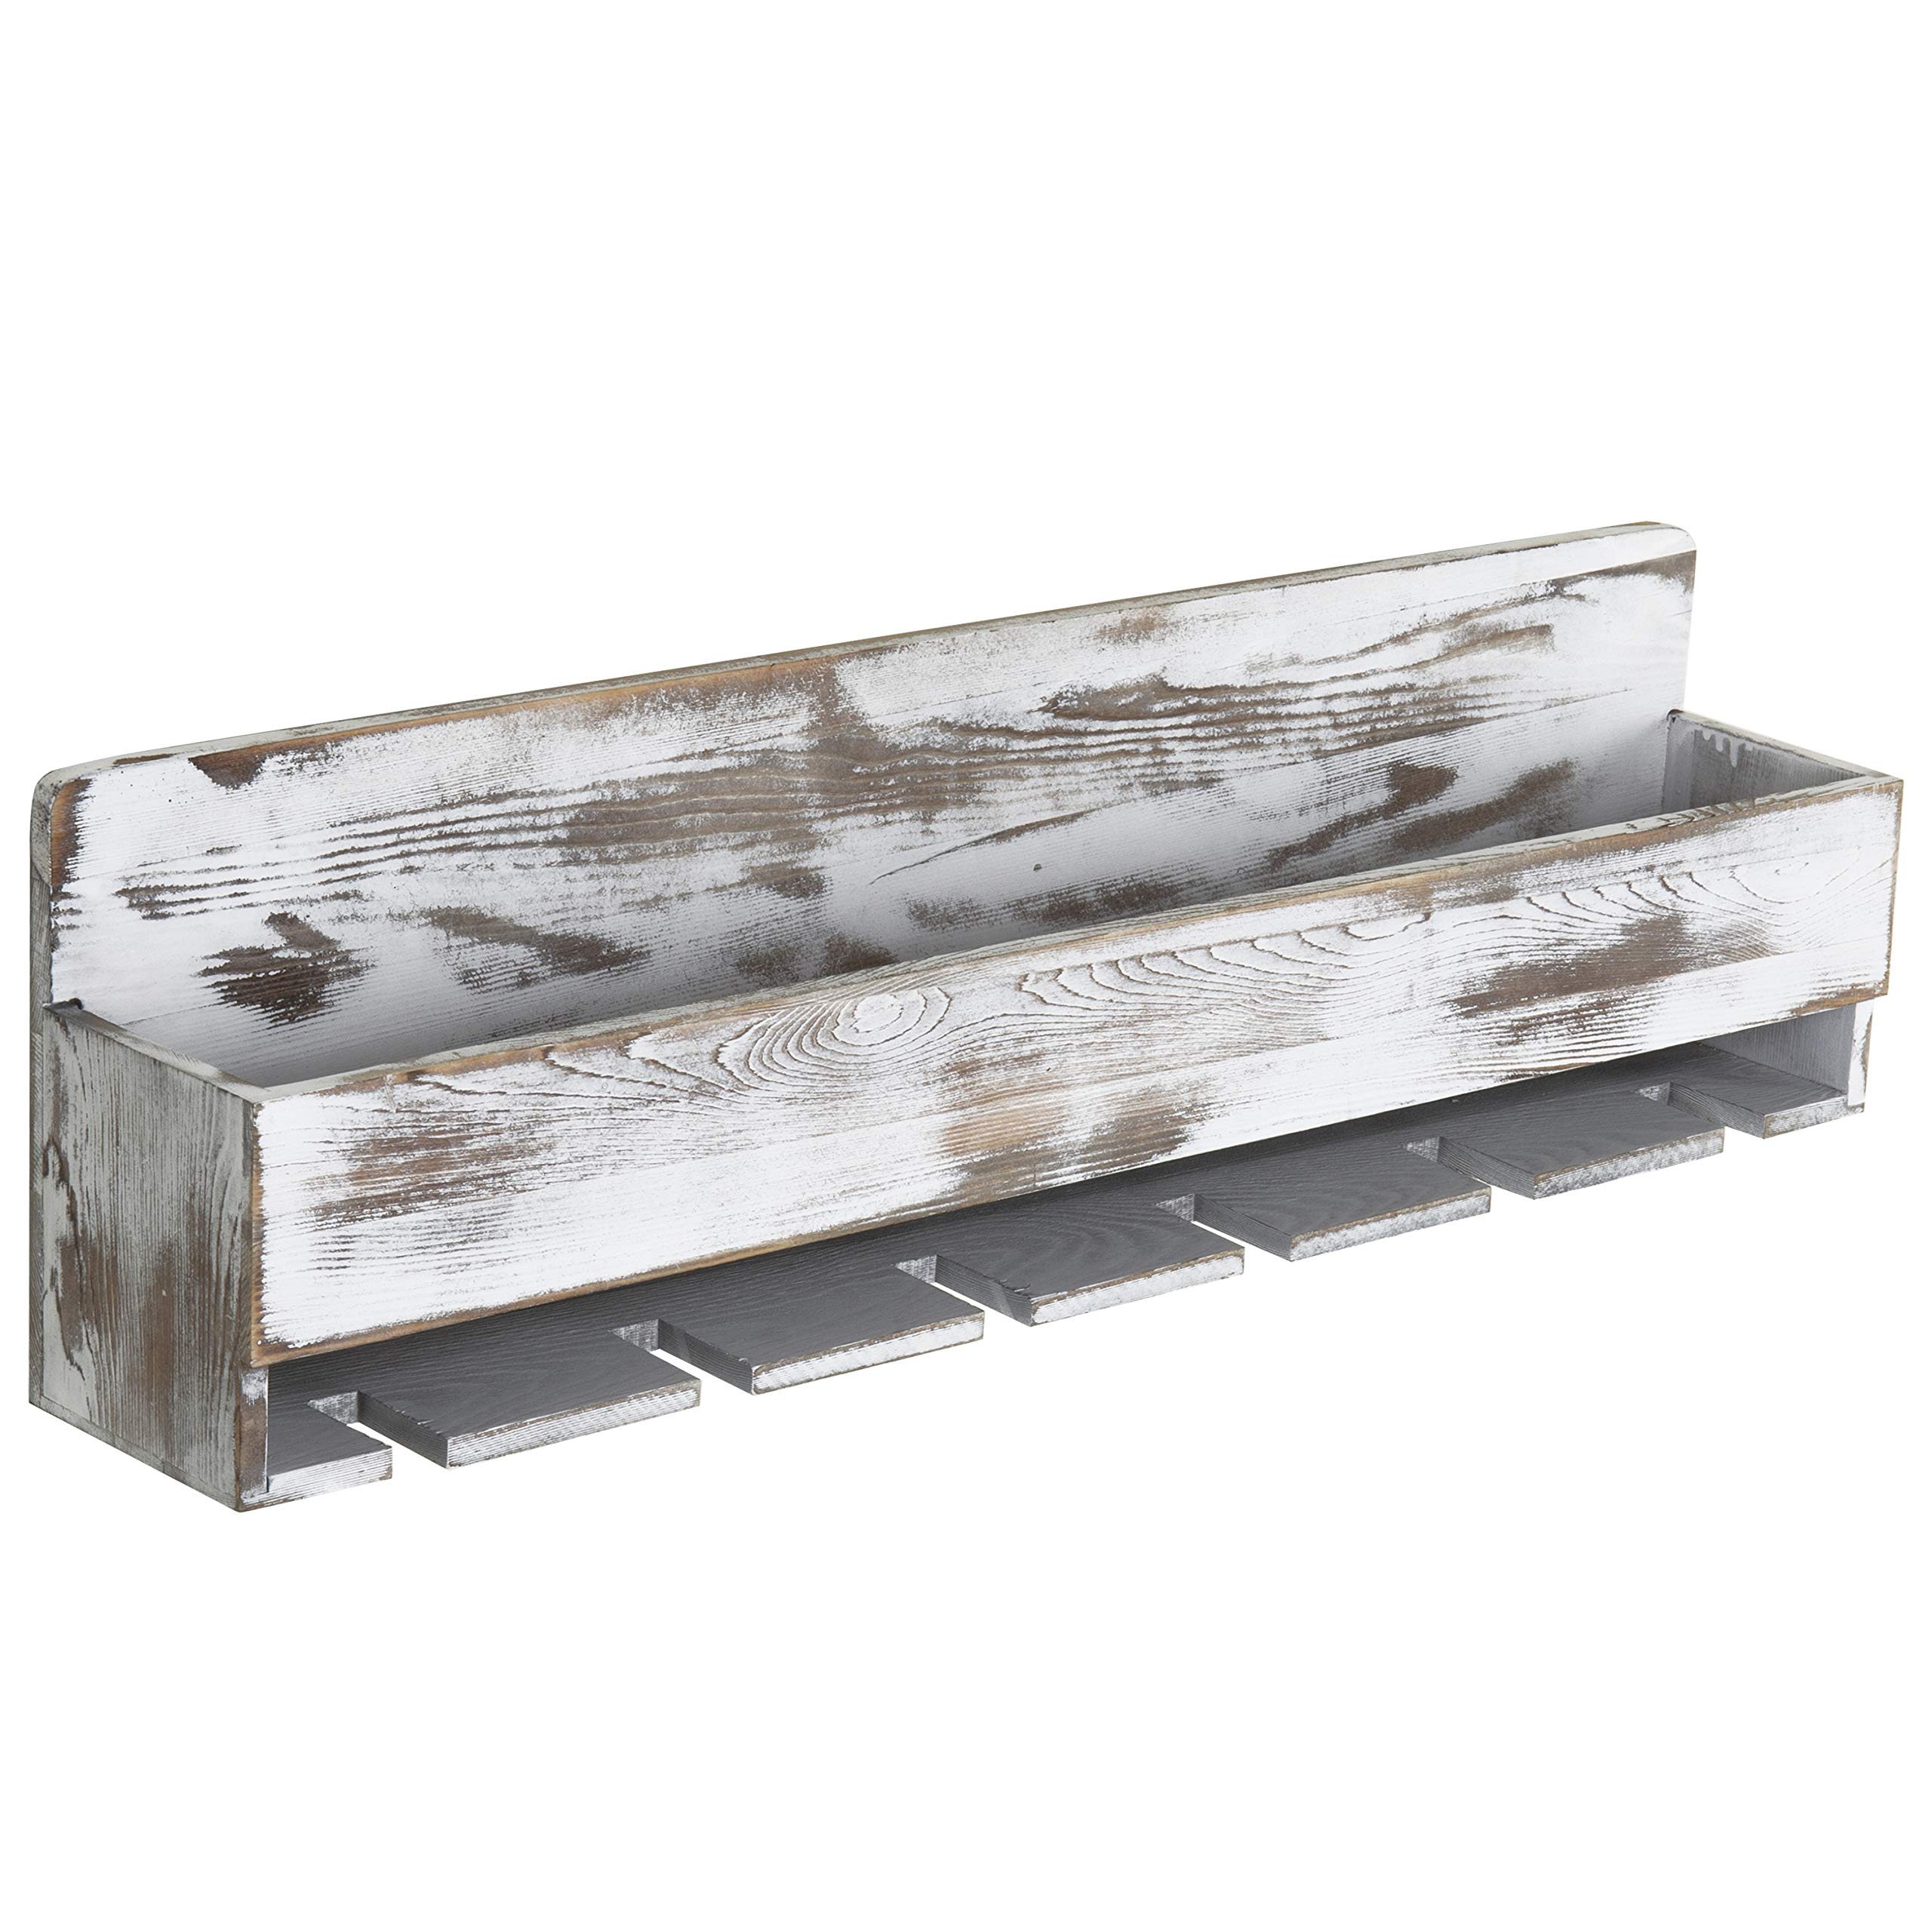 MyGift Rustic Whitewashed Wood Wall-Mounted Wine Rack with Bottle & Glass Holder by MyGift (Image #5)